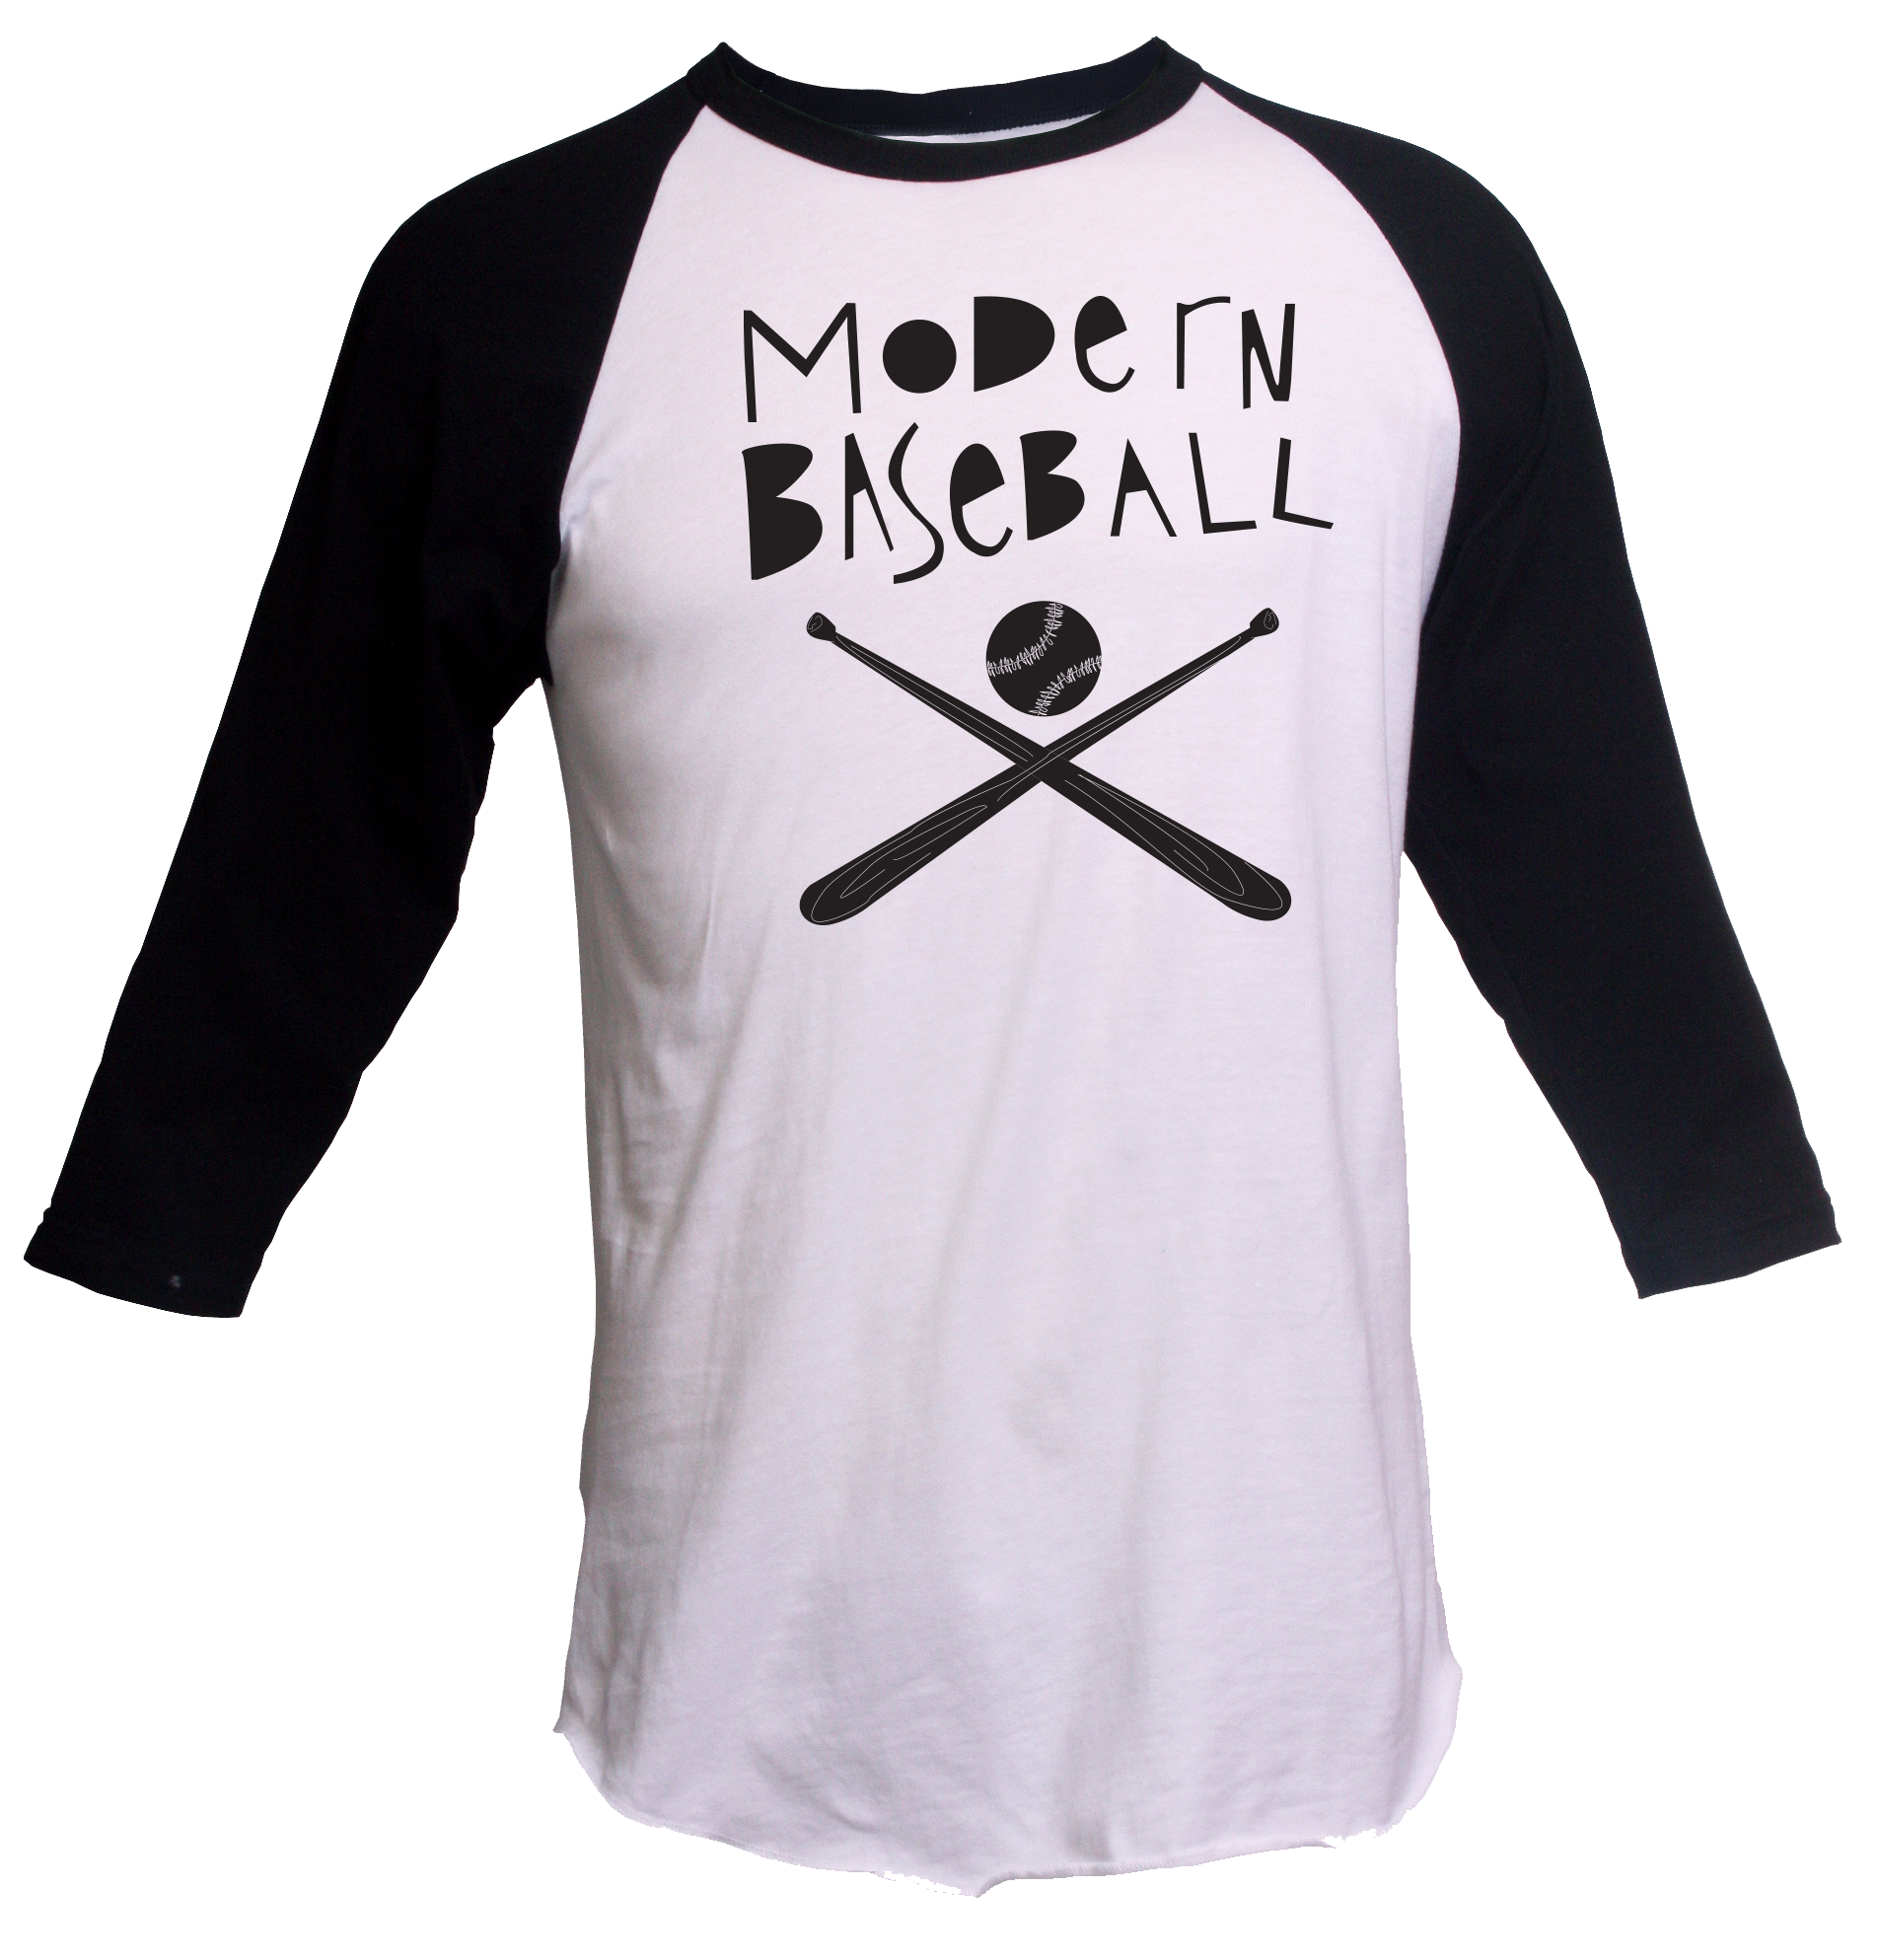 Black dog t shirt ebay - Baseball Bat 3 4 Sleeve Tee